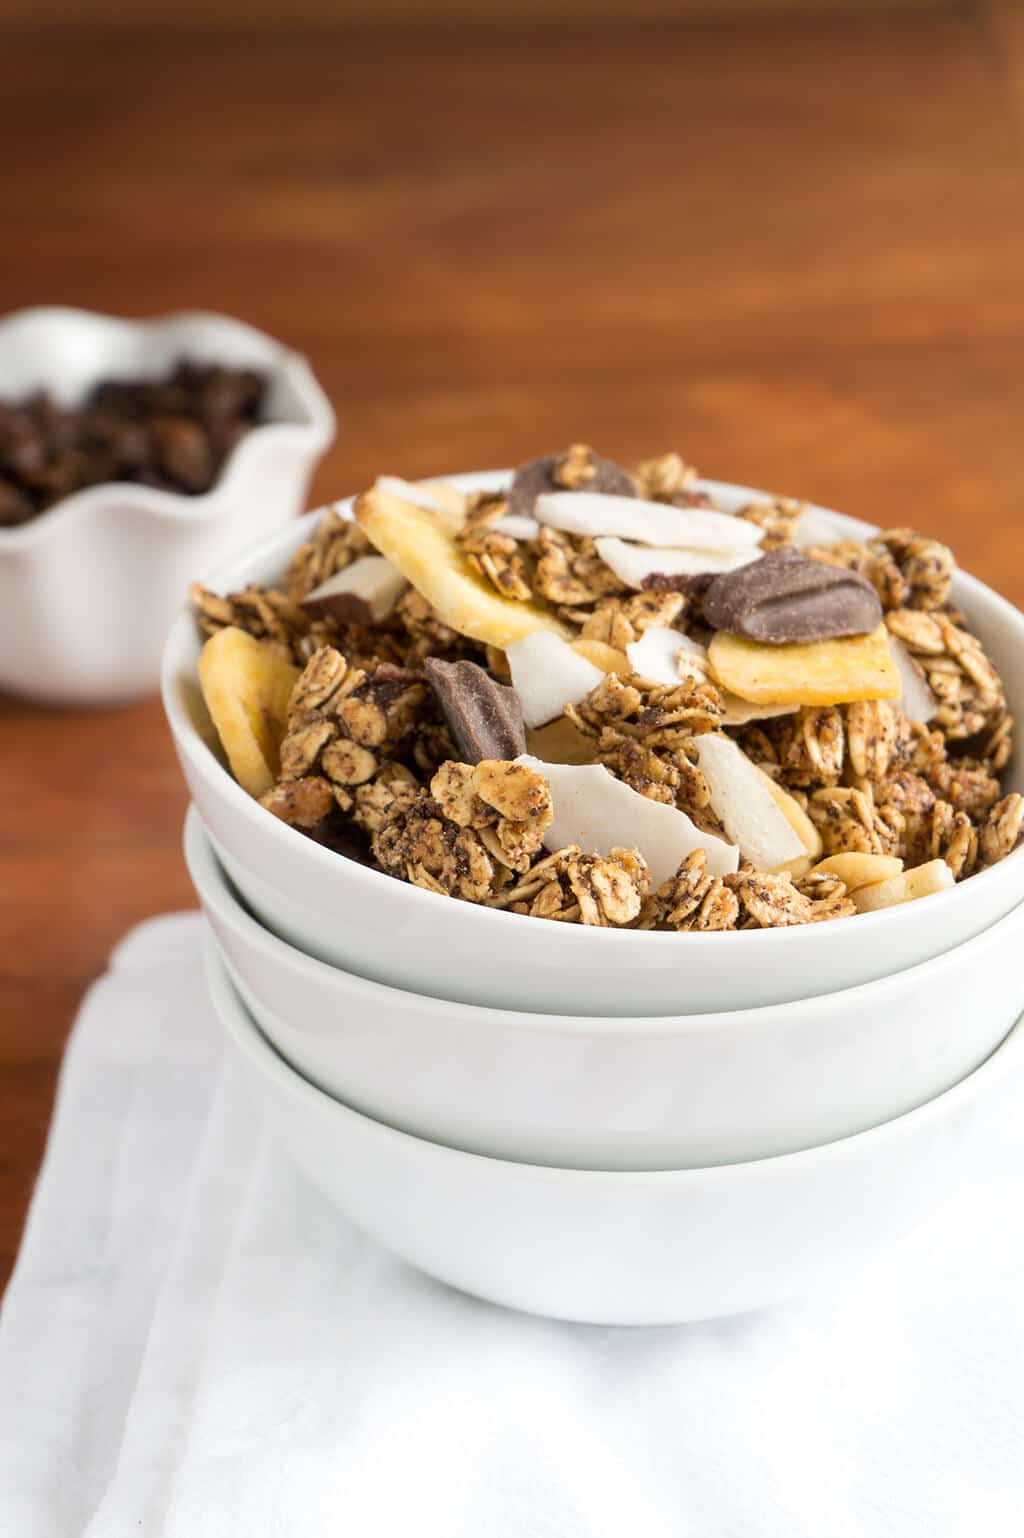 Chunks of semi-sweet chocolate, coconut and banana chips mixed into a toasted Georgia Pecan Coffee Granola for a scrumptious breakfast or snack! | BREAKFAST | GRANOLA | COFFEE | VEGAN | GLUTEN FREE | Recipe at OatandSesame.com